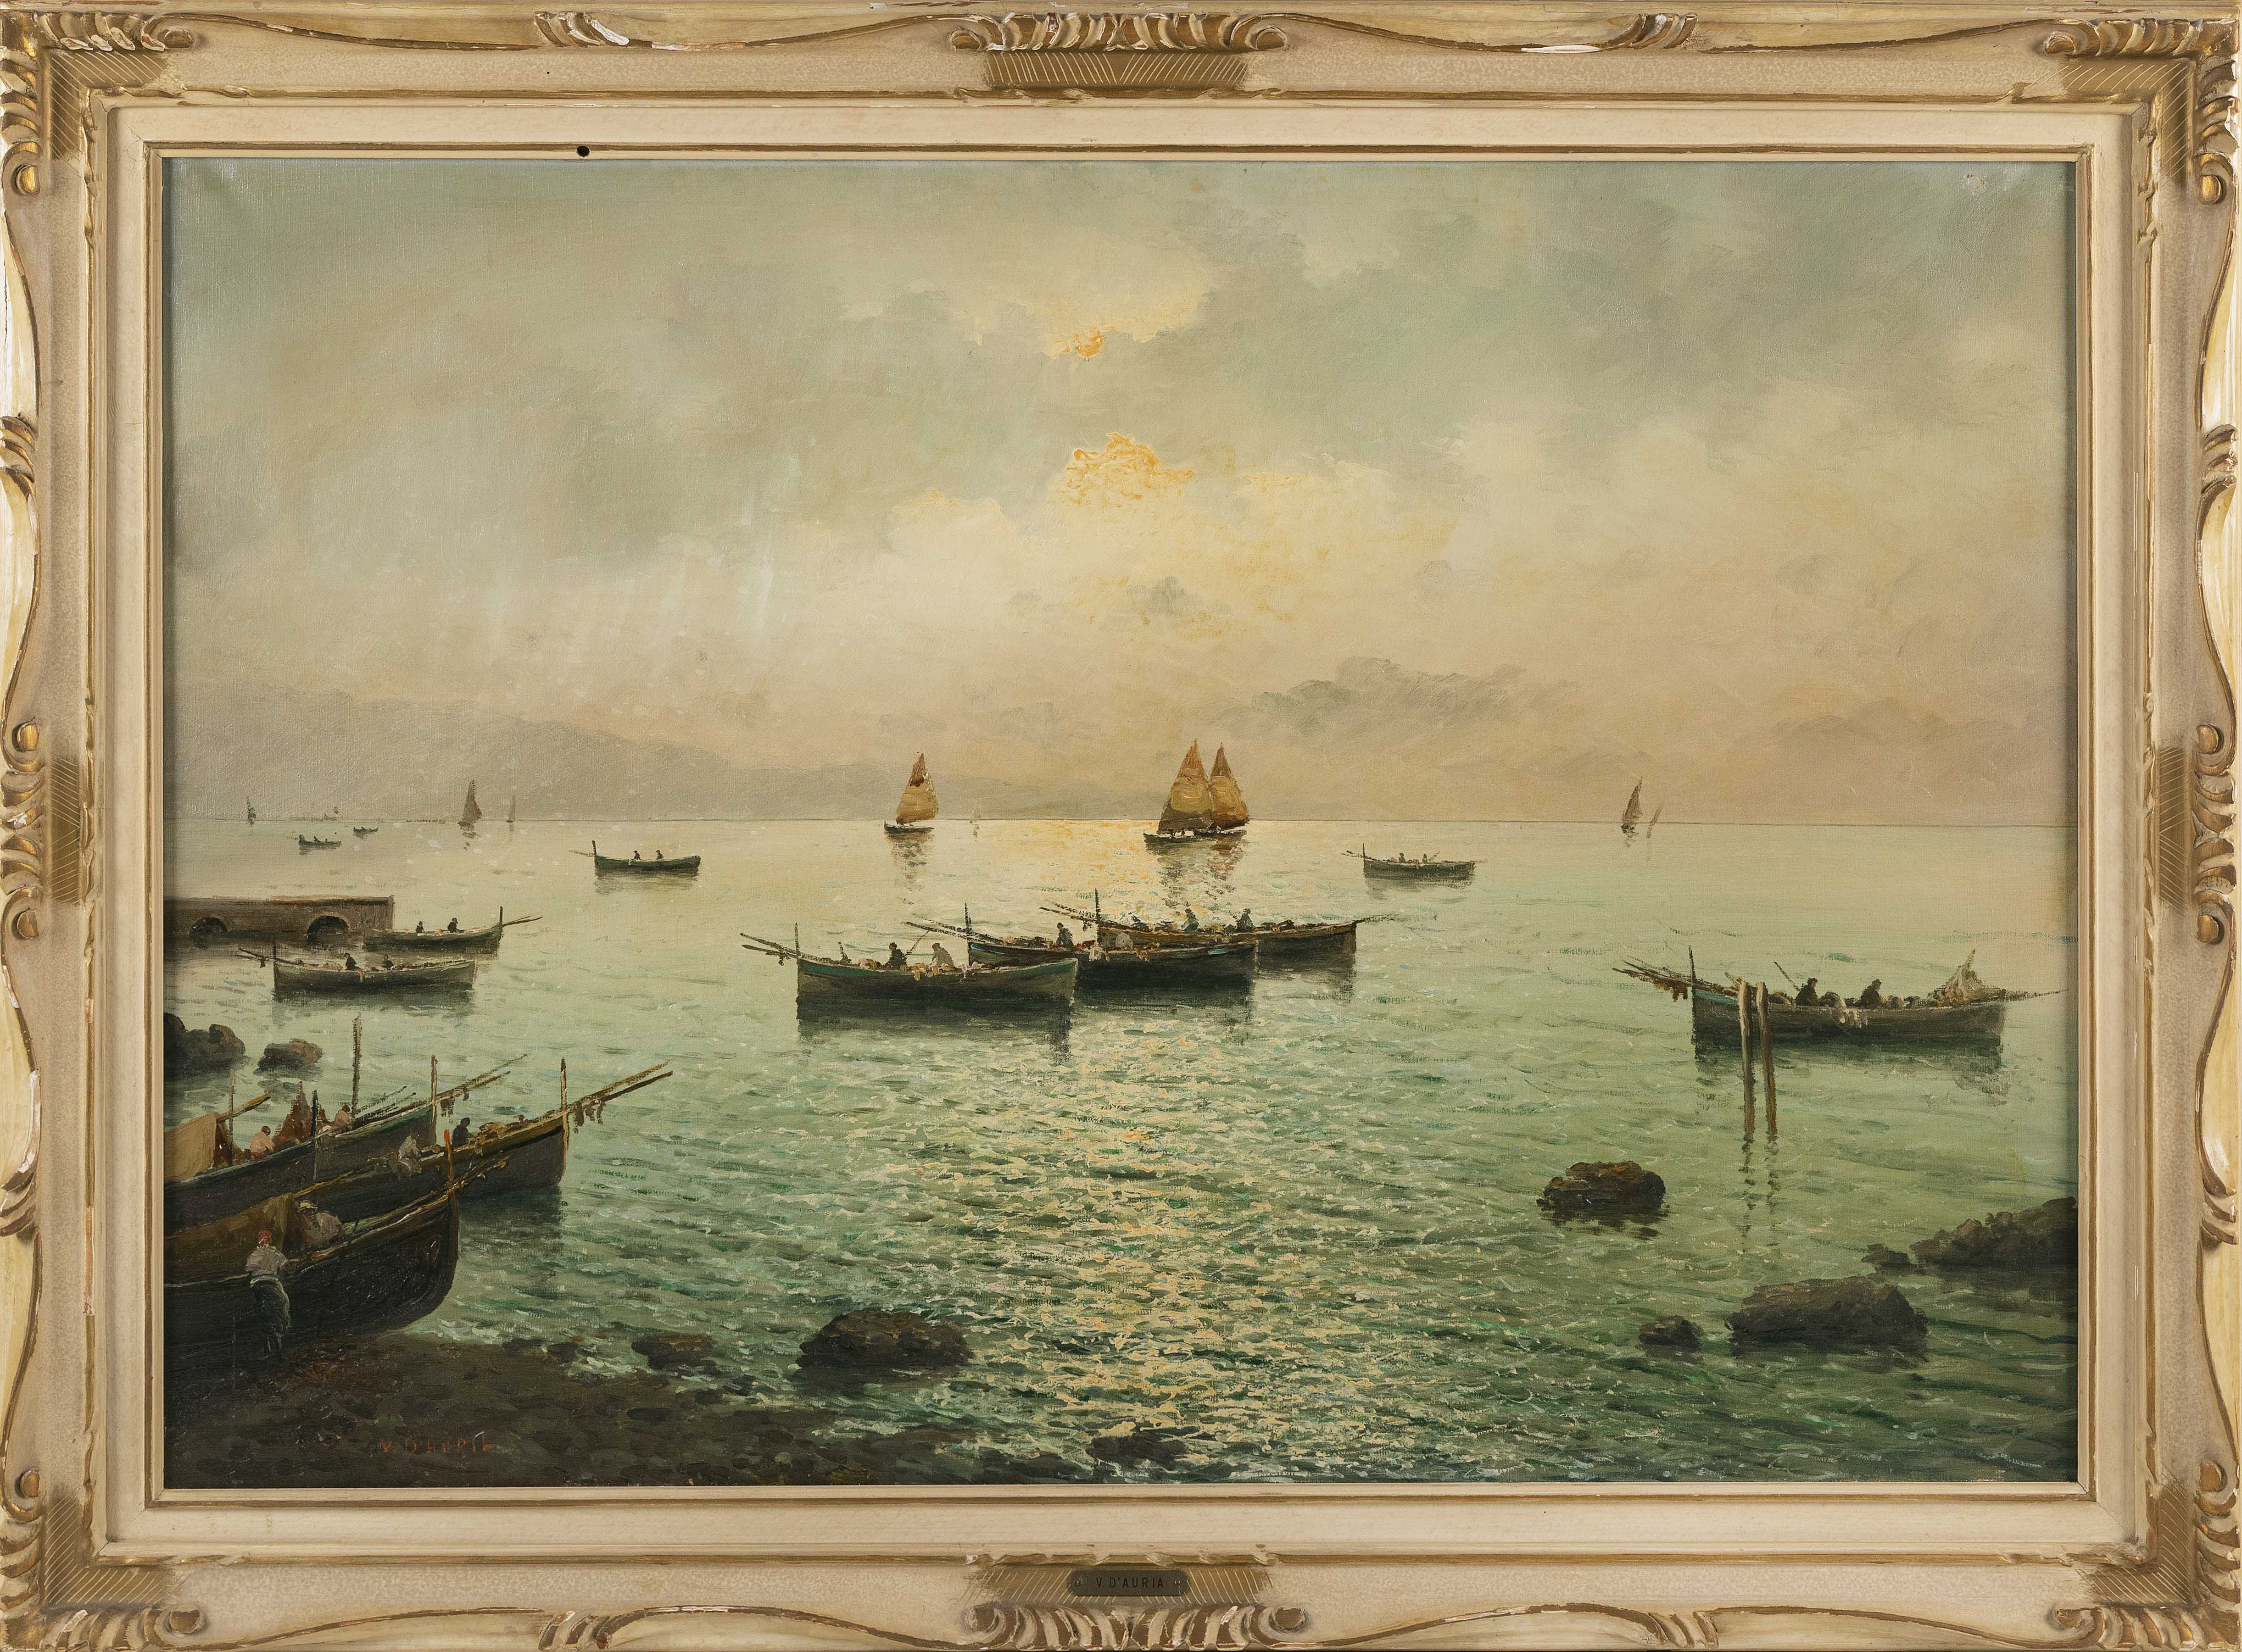 VINCENZO D'AURIA (Italy, 1872-1939), Sunset over a bay., Oil on canvas, 27.5